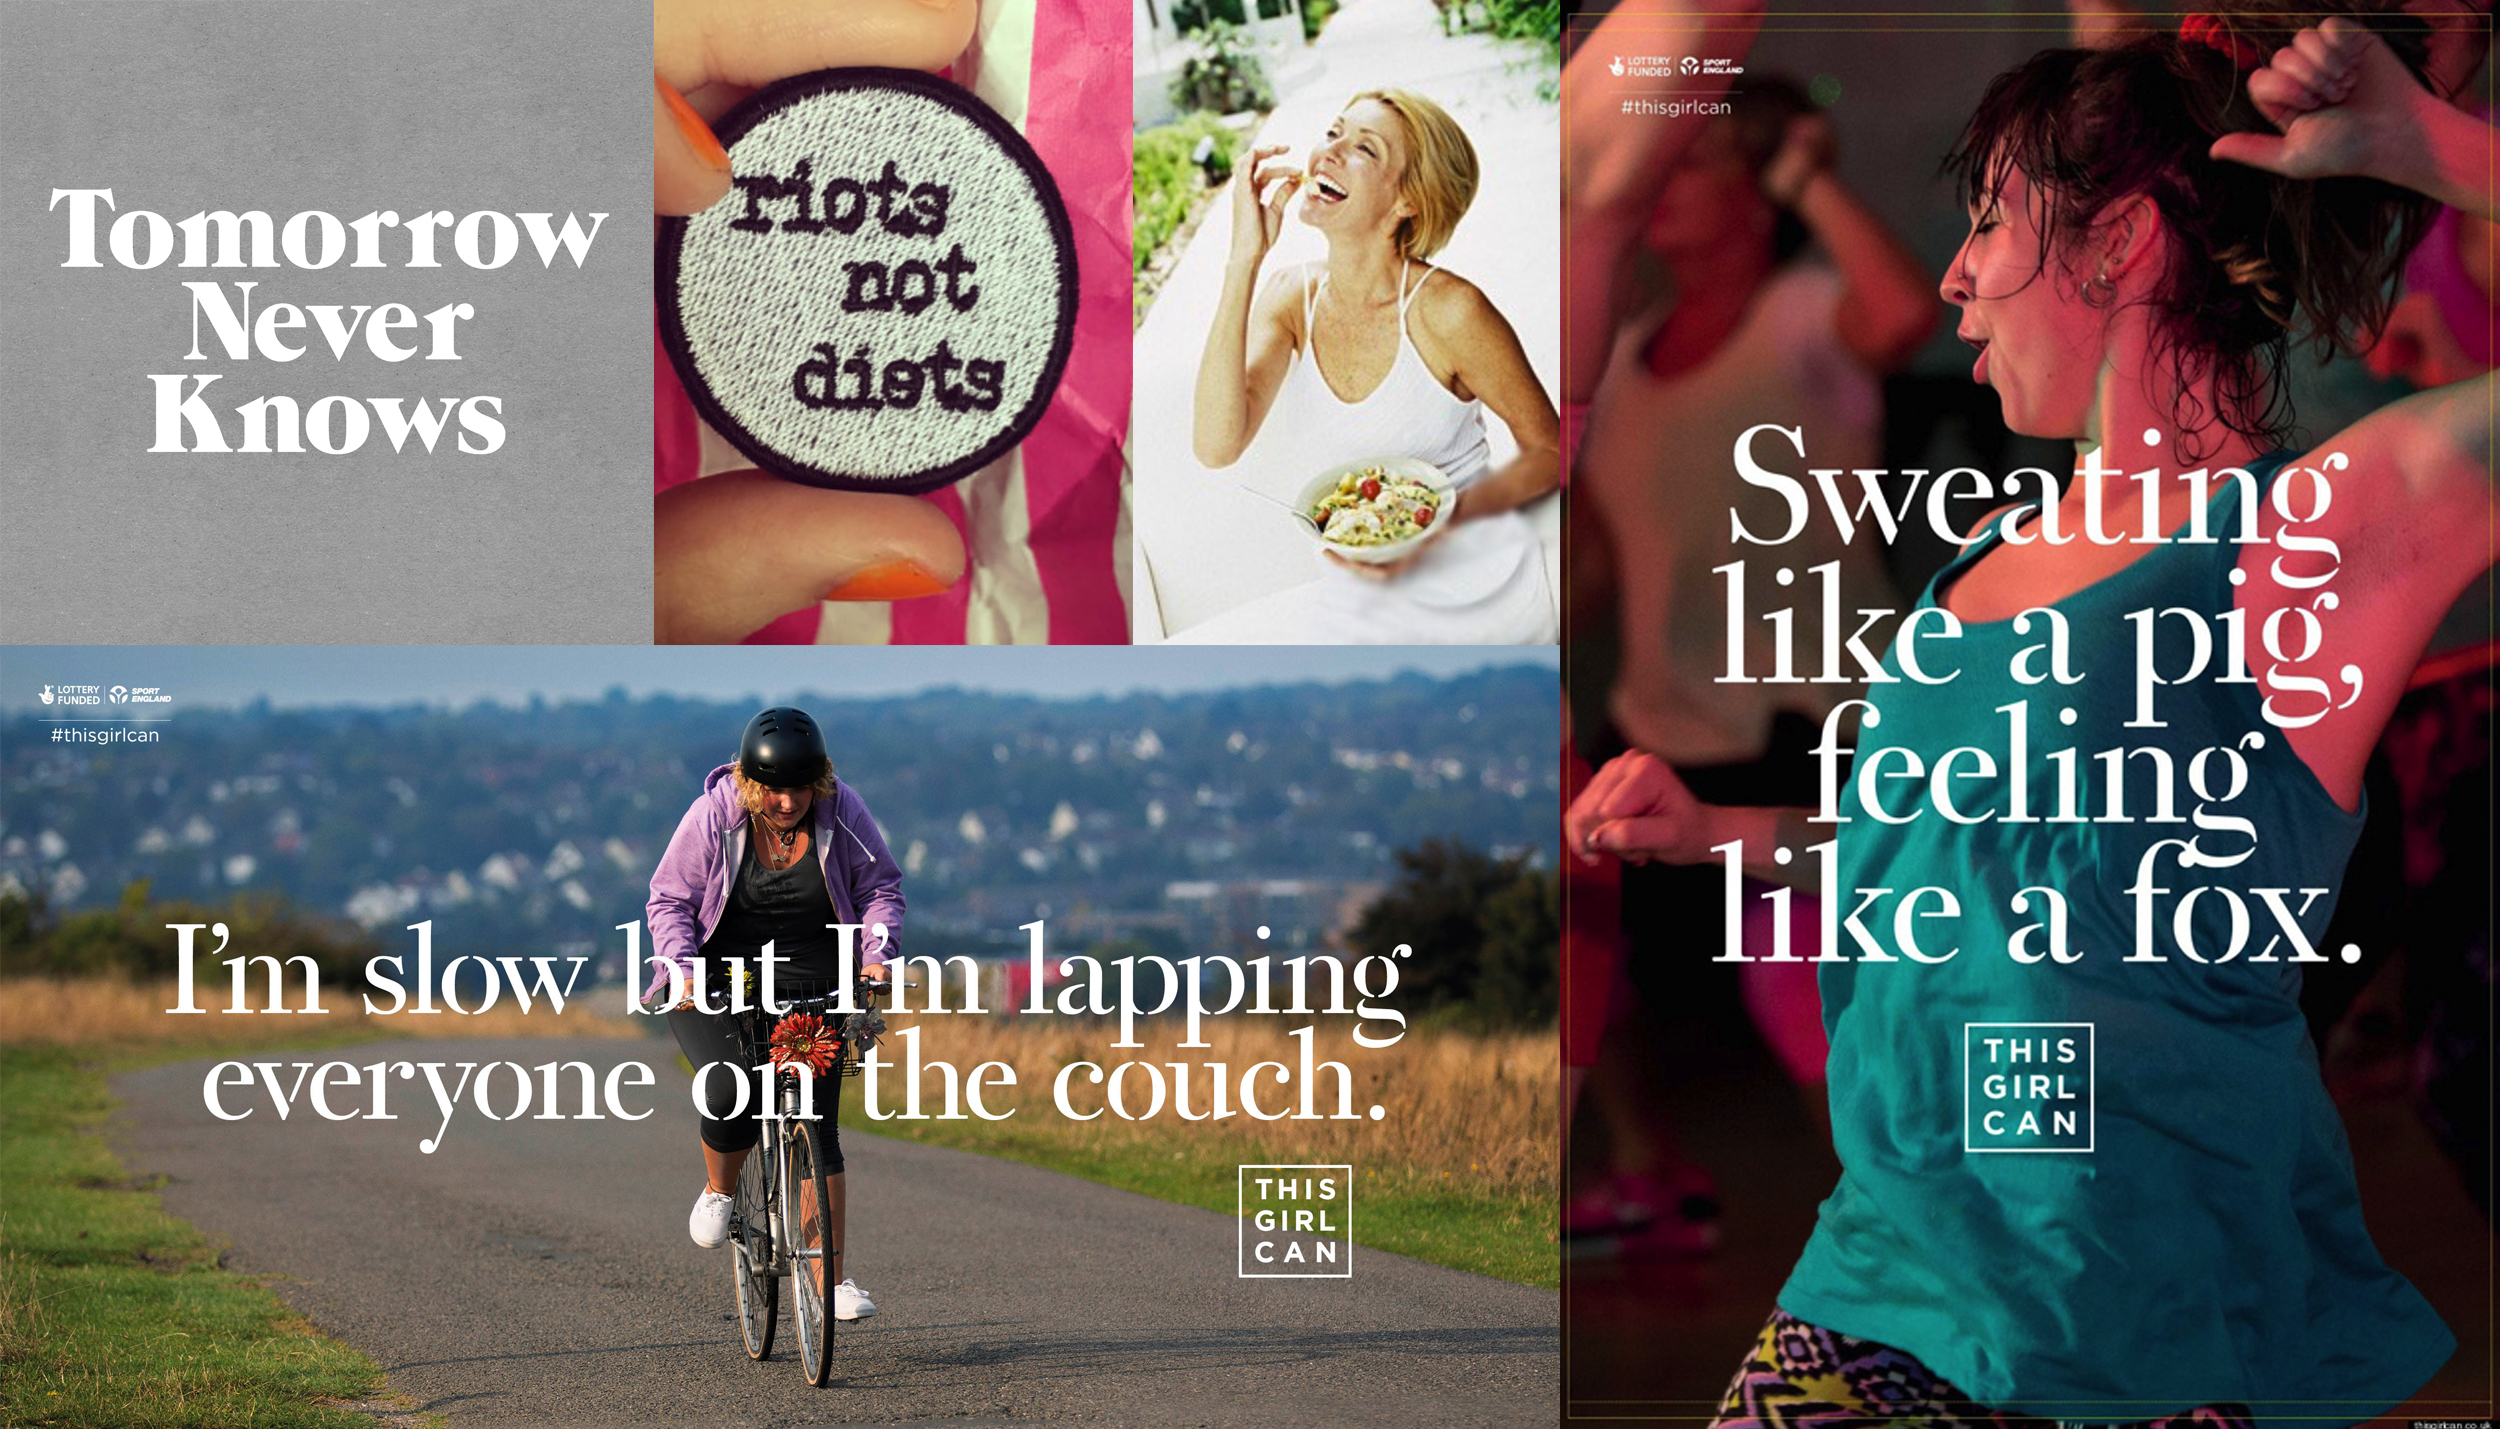 Image credits (clockwise from top left):  @3Dperson  //    halfstitchembroidery  //  Women Laughing Alone With Salad  //  Sport England  //